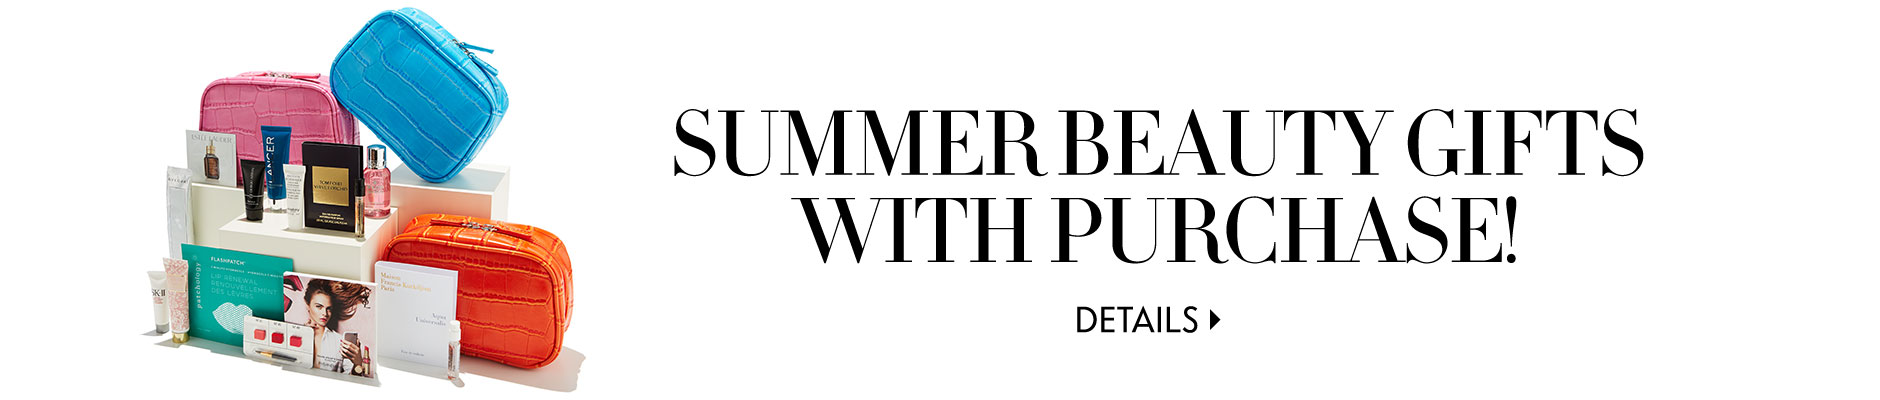 Summer Beauty Gifts With Purchase!